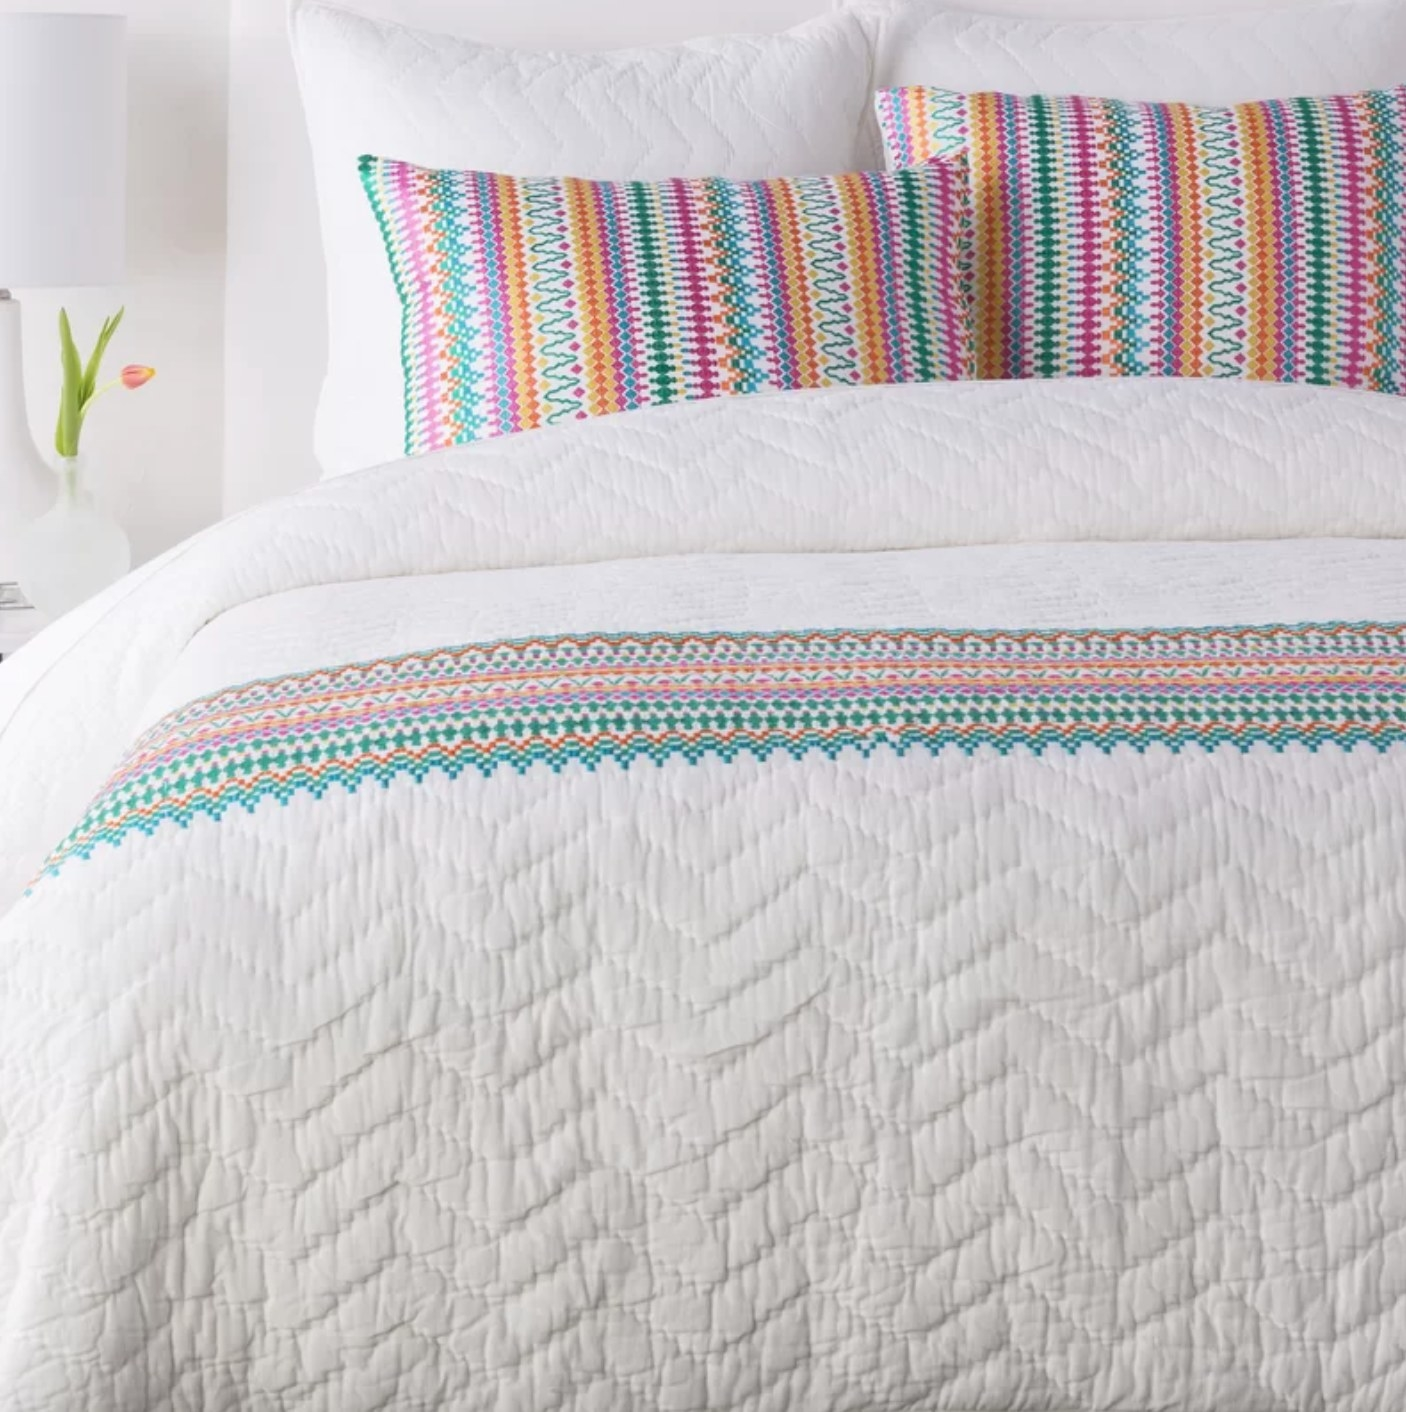 The colorful quilt on a bed